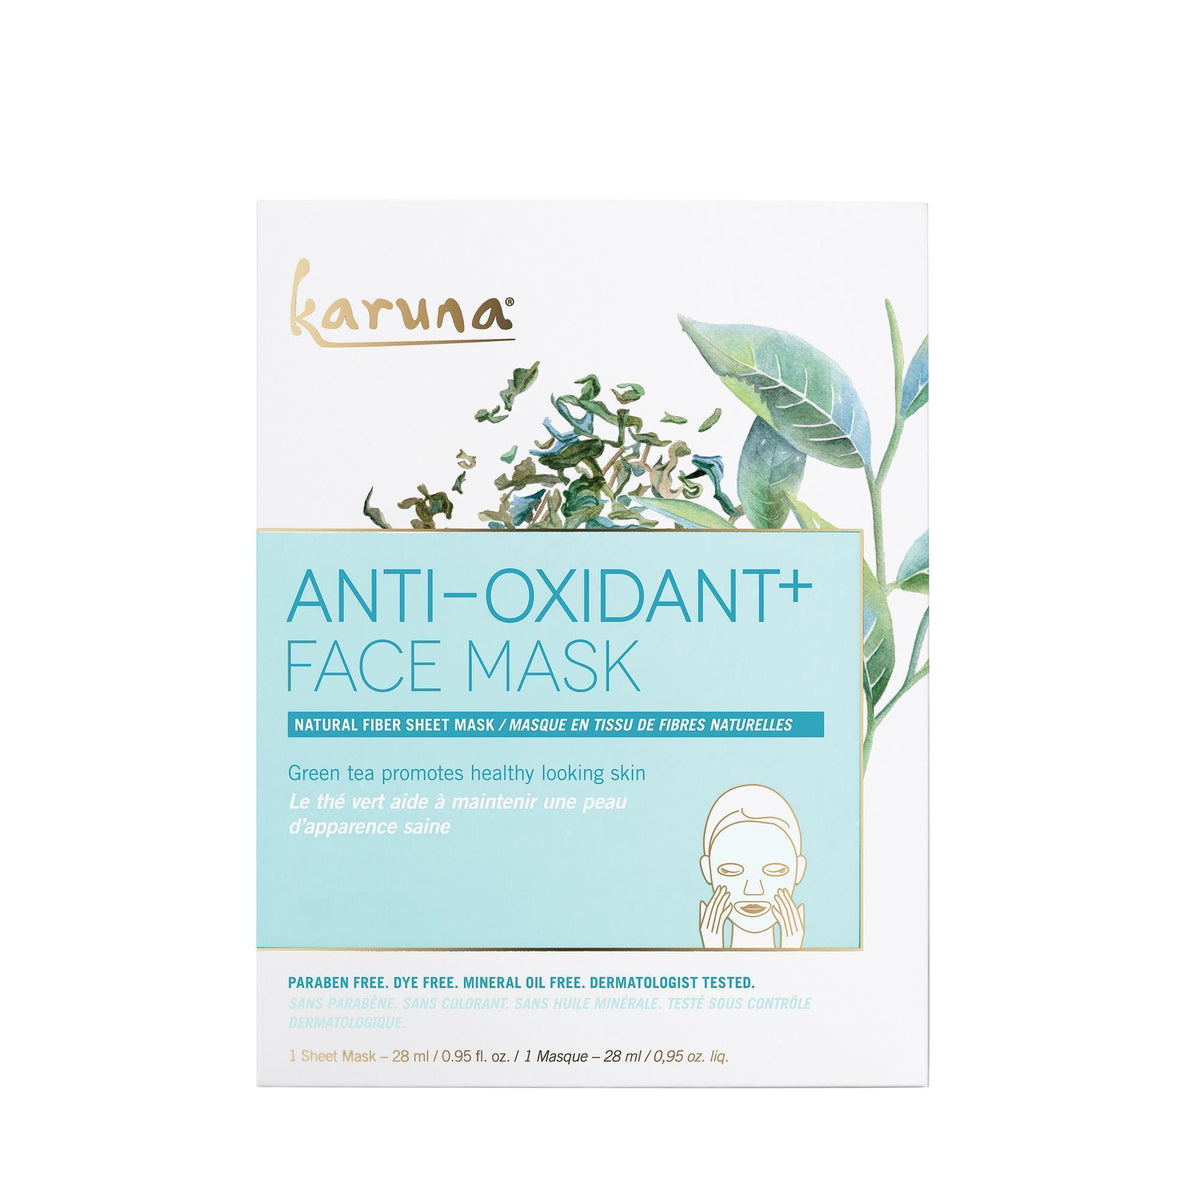 Karuna Antioxidant+ Face Mask